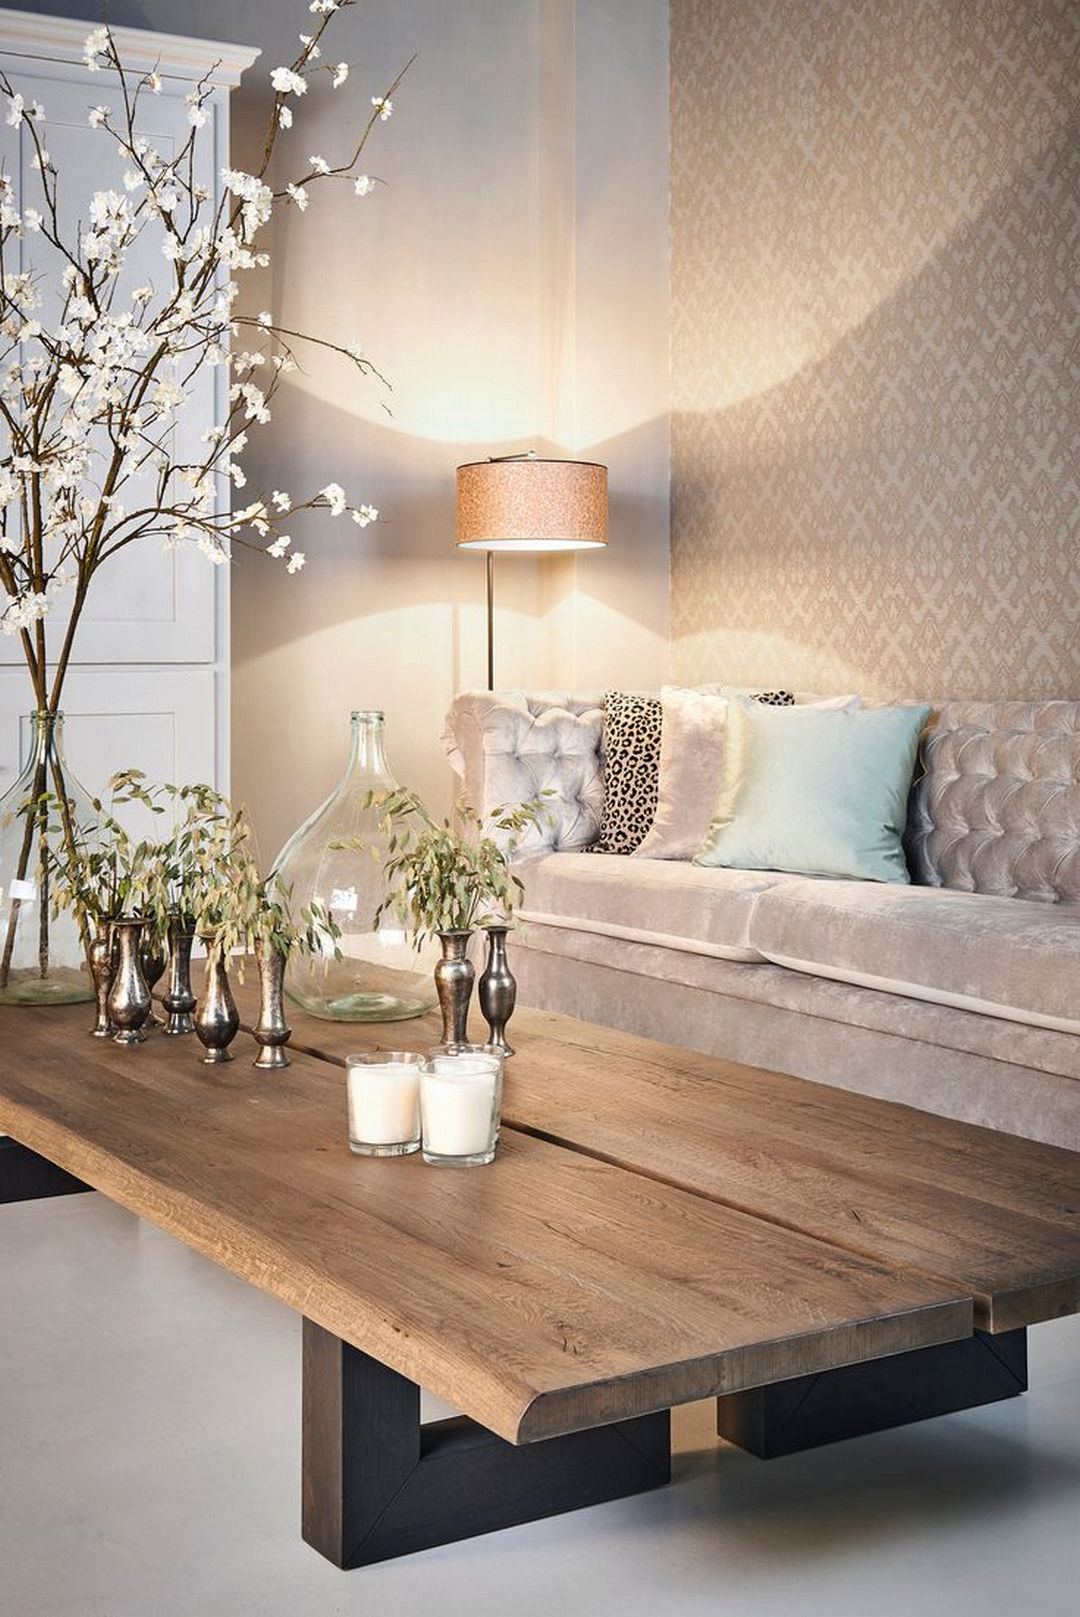 Wonderful coffee table design idea also best fireplace remodel ideas to makeover your rh pinterest